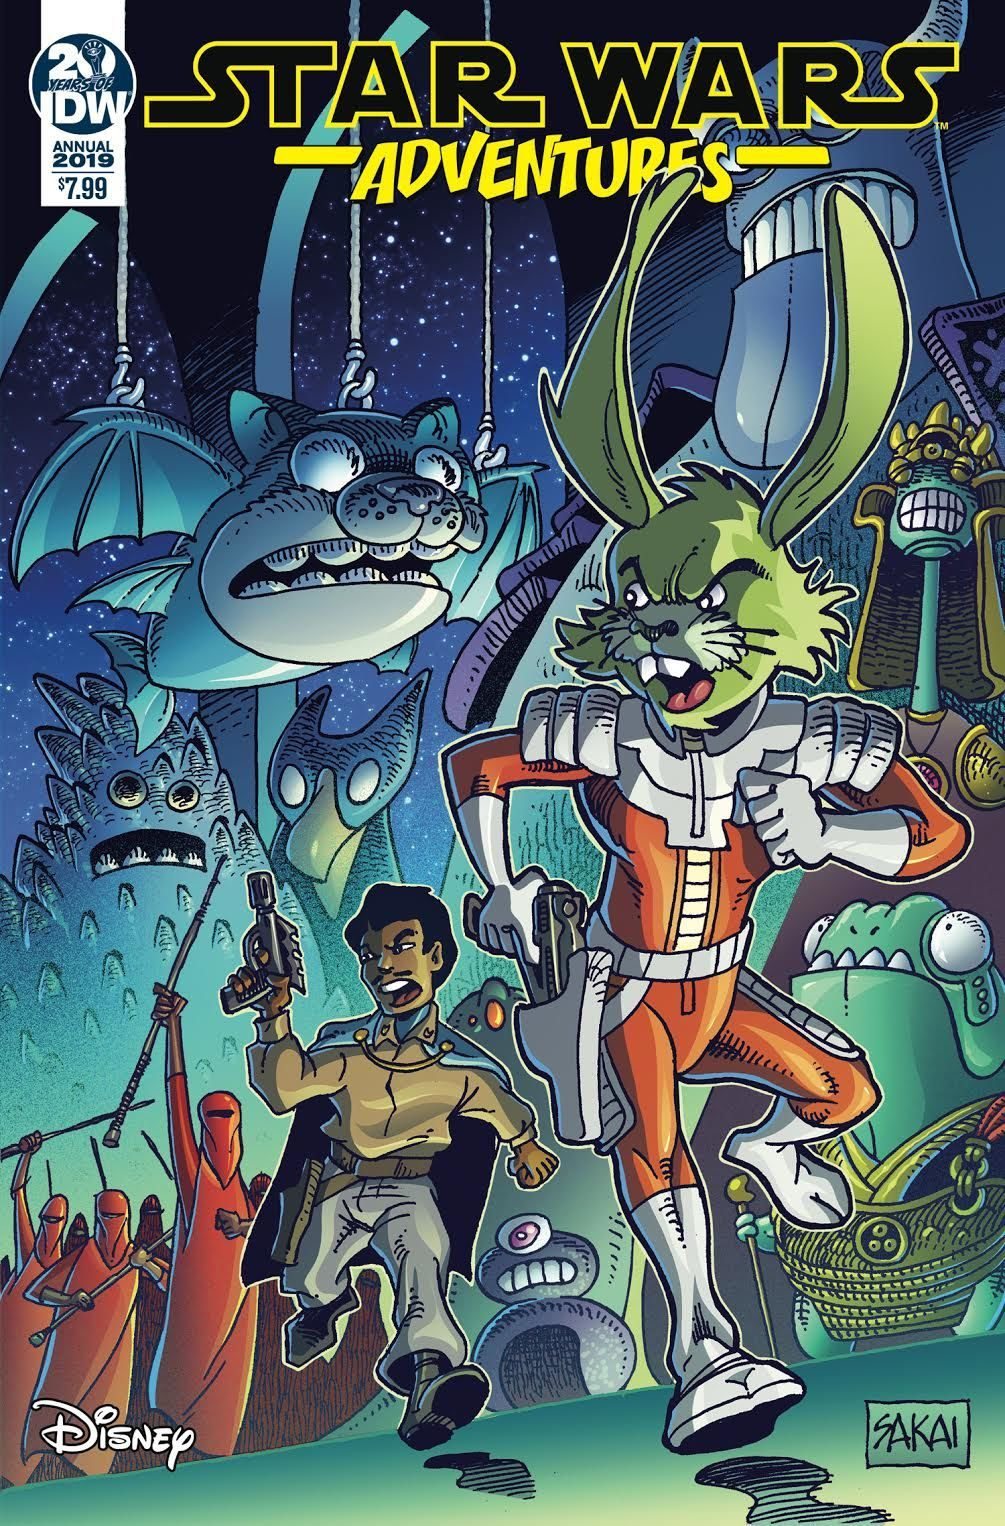 Star Wars Adventures Annual 2019 (21.08.2019)